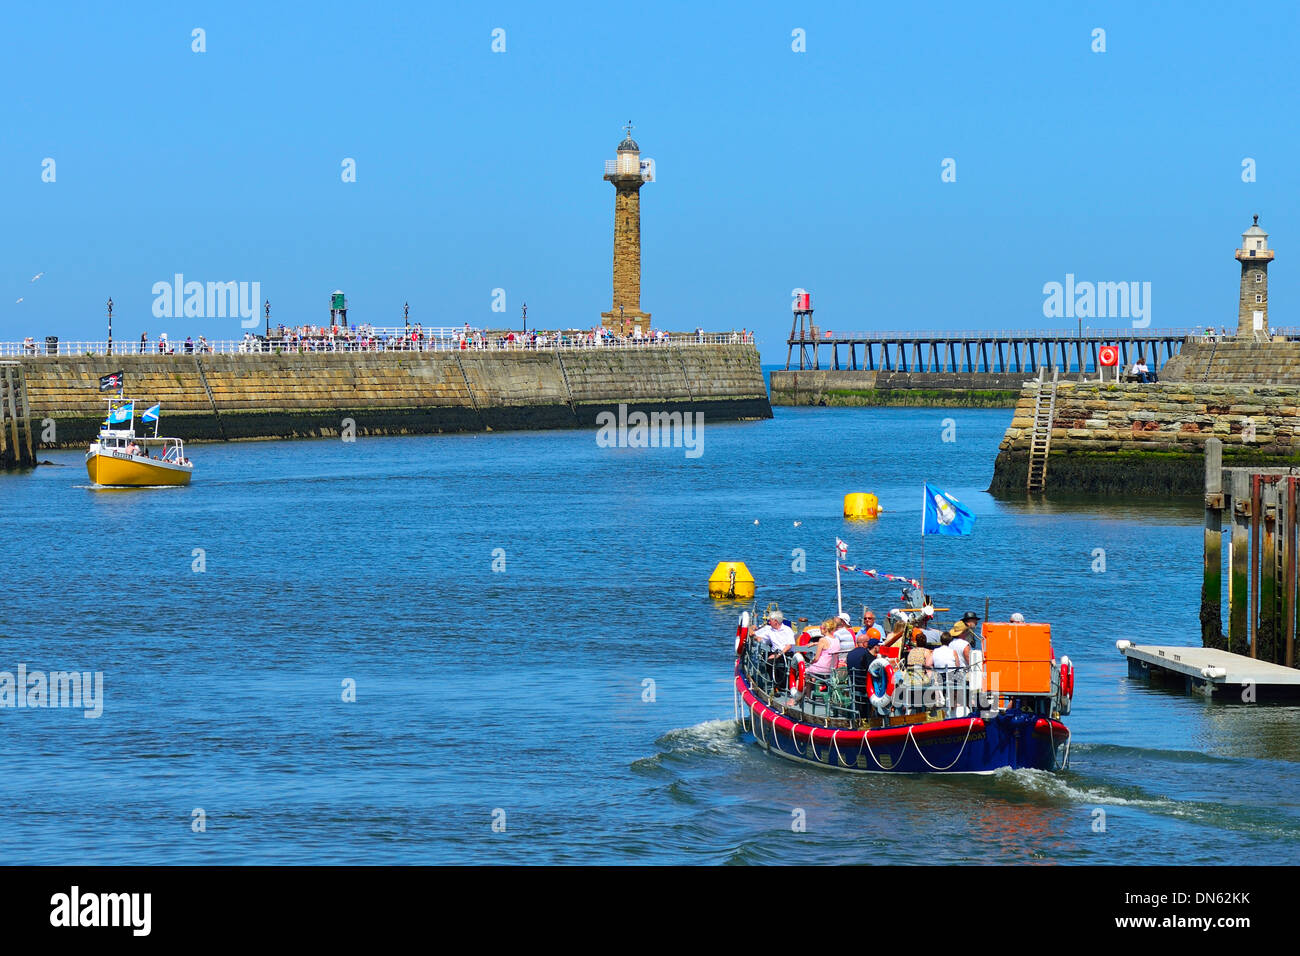 Excursion boat on the River Esk, Whitby, North Yorkshire, England, United Kingdom - Stock Image